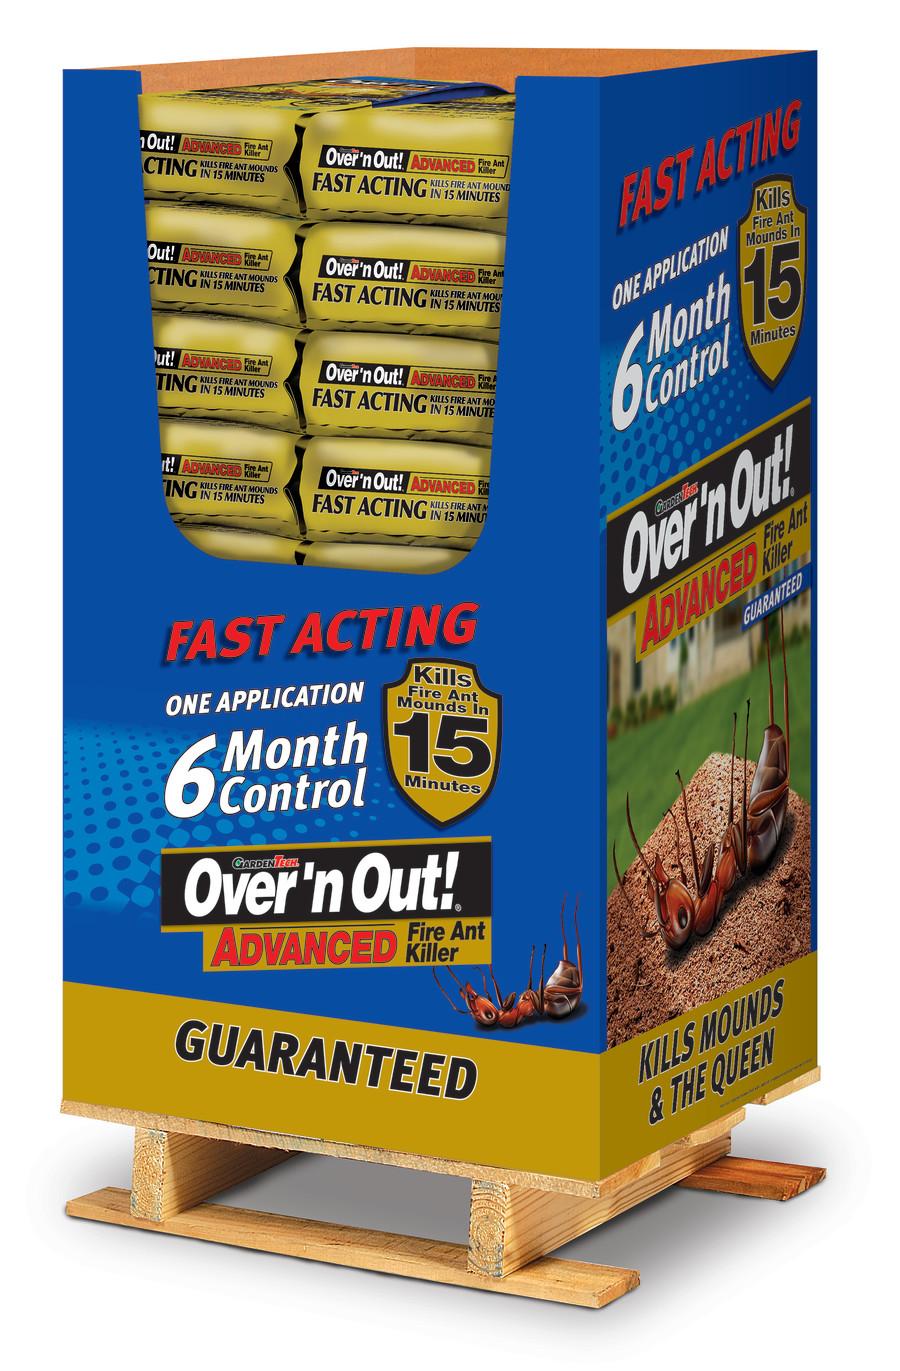 Over 'n Out Advanced Fire Ant Killer 36ea/11.5 lb